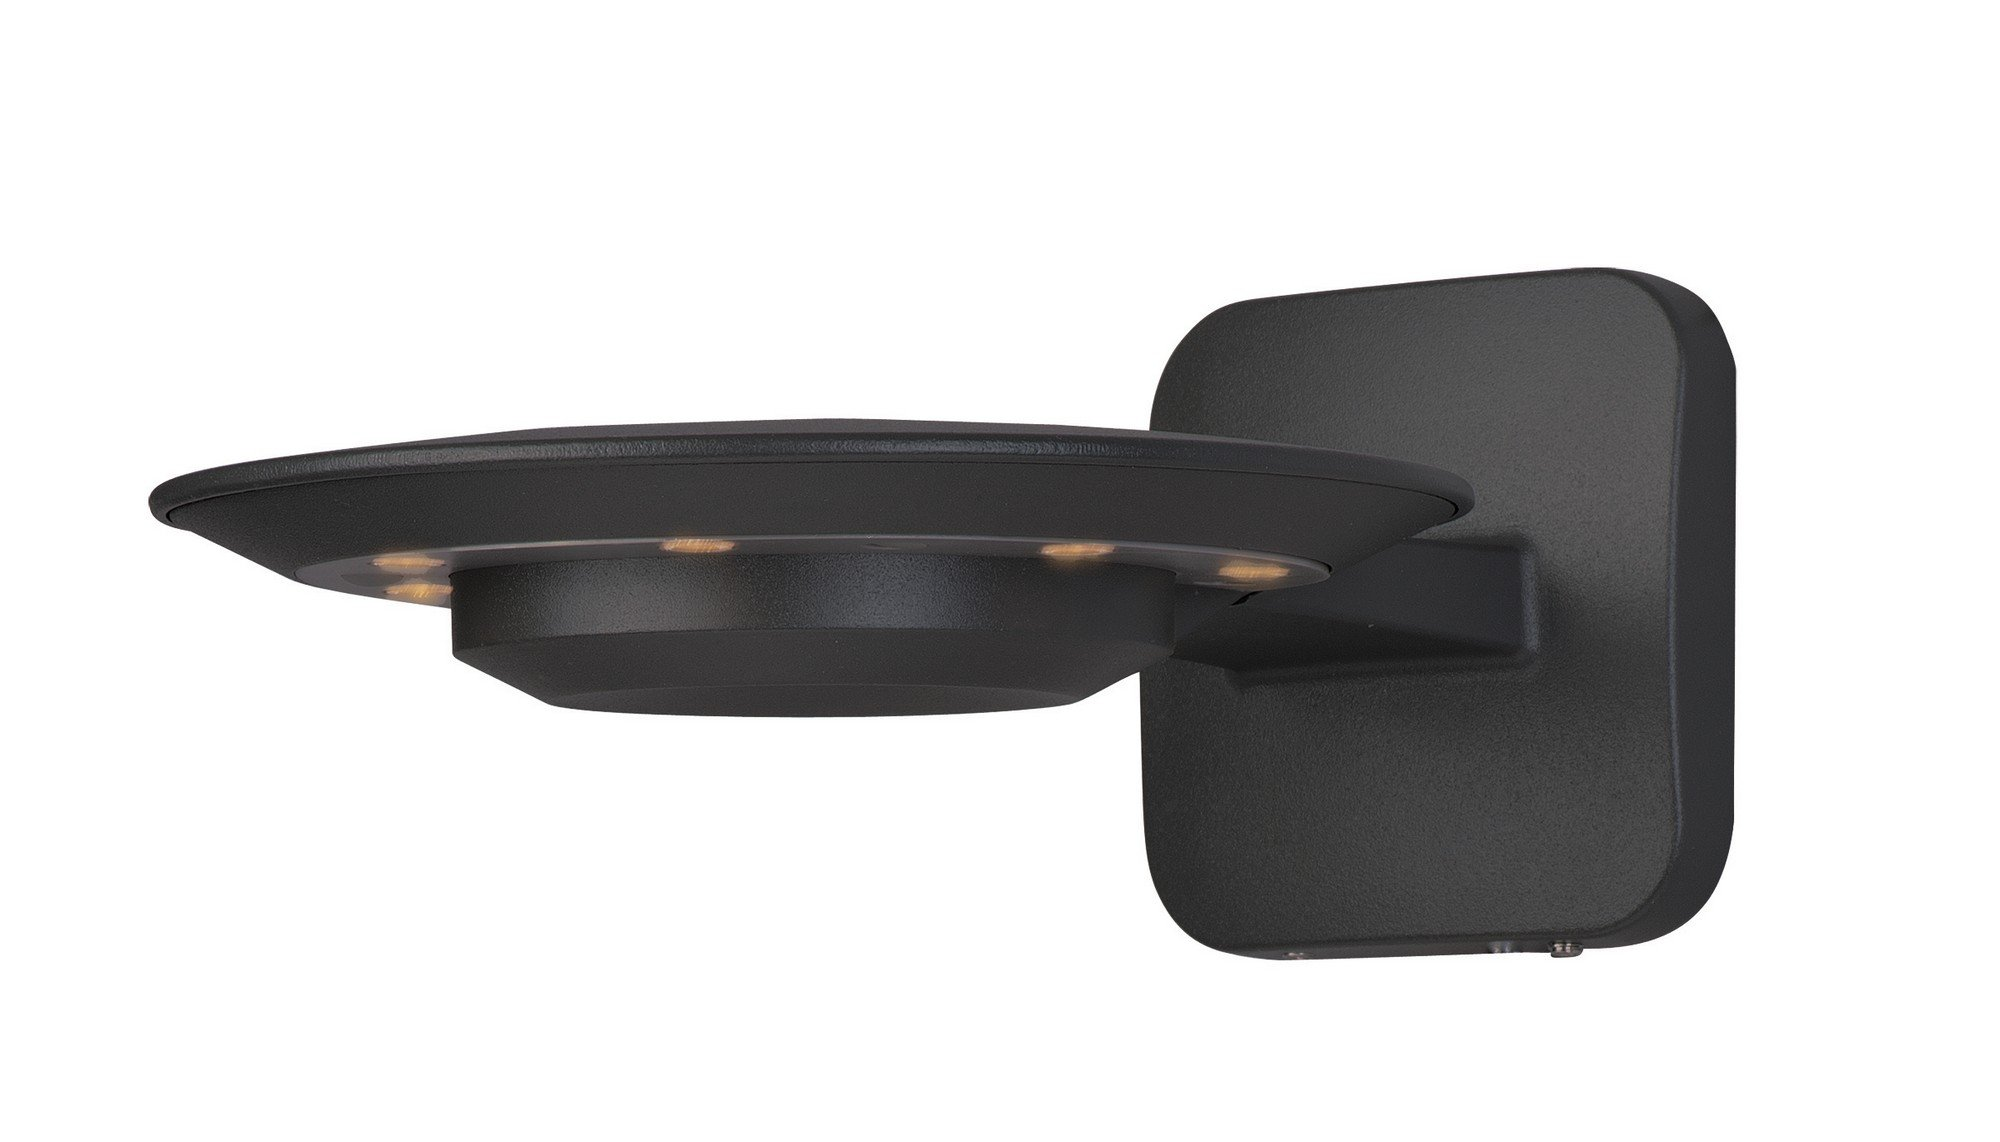 ET2 E41420-BZ Alumilux DC LED Outdoor Wall Sconce, Bronze Finish, Glass, LED Bulb, 50W Max., Dry Safety Rated, 2700K Color Temp., Acrylic Shade Material, 5645 Rated Lumens